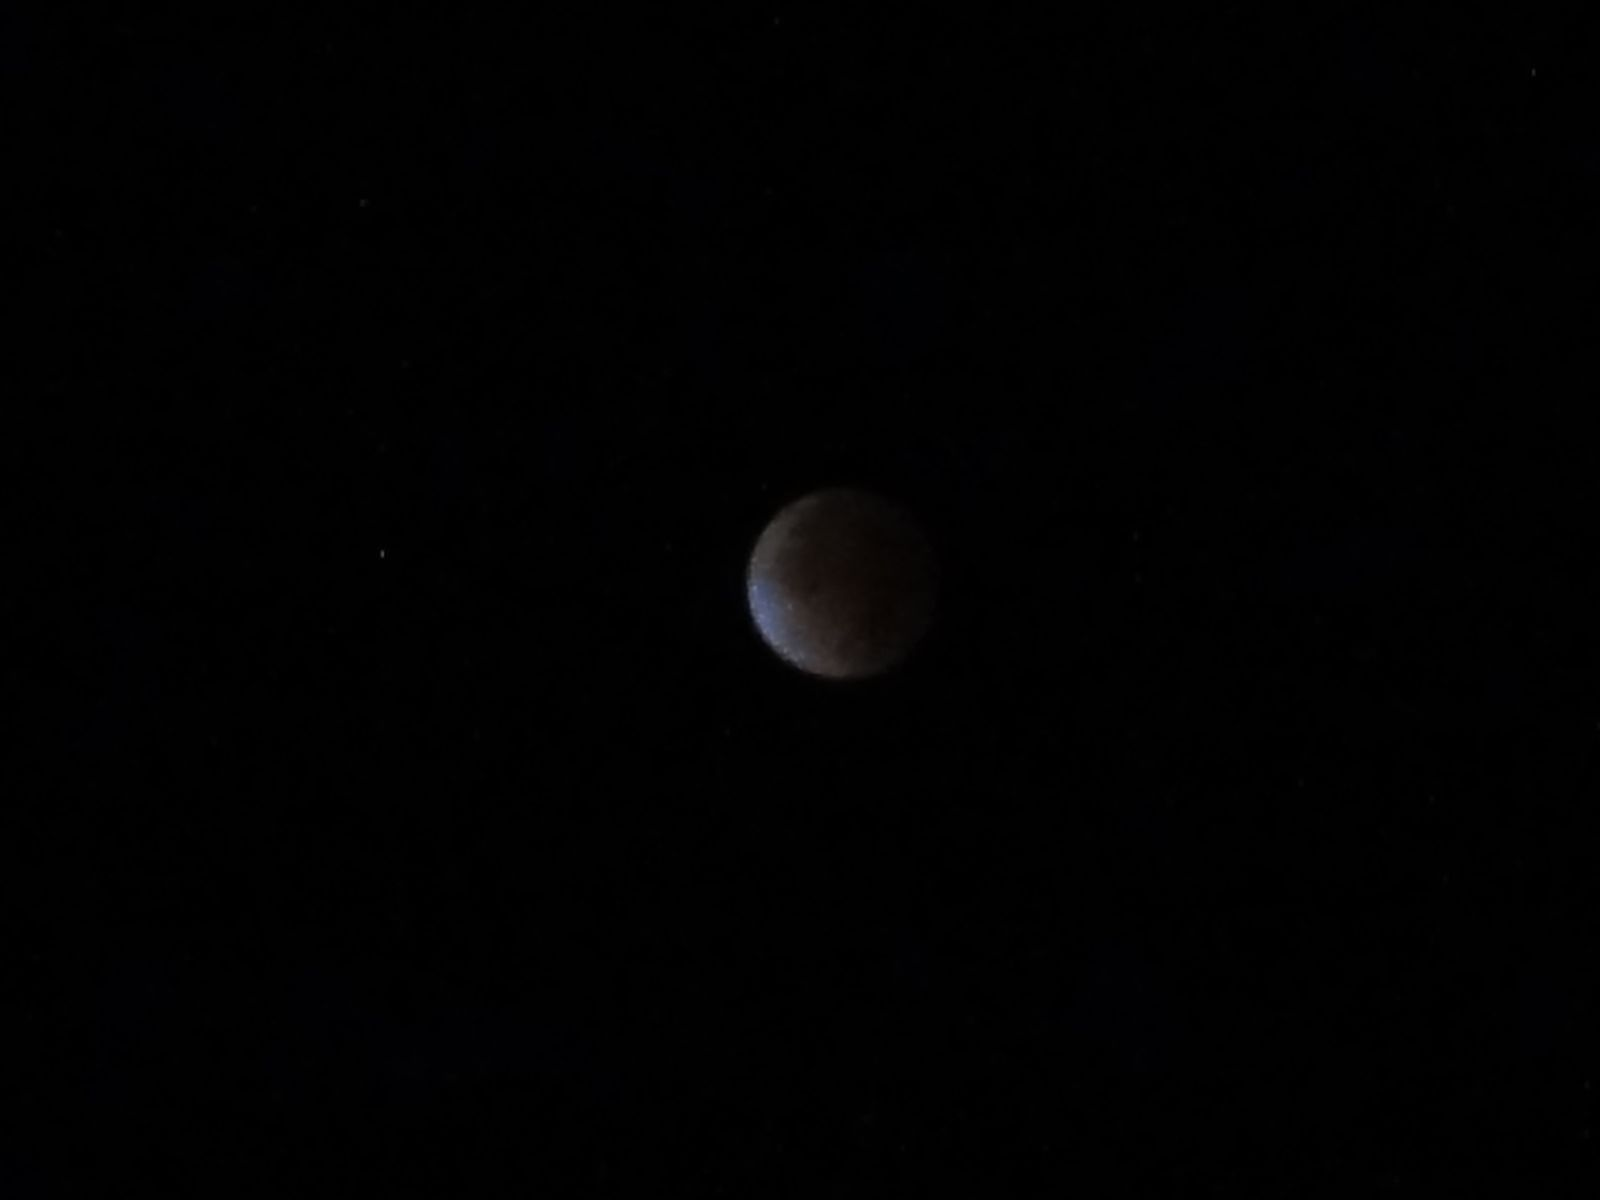 lunar_eclipse_152.jpg